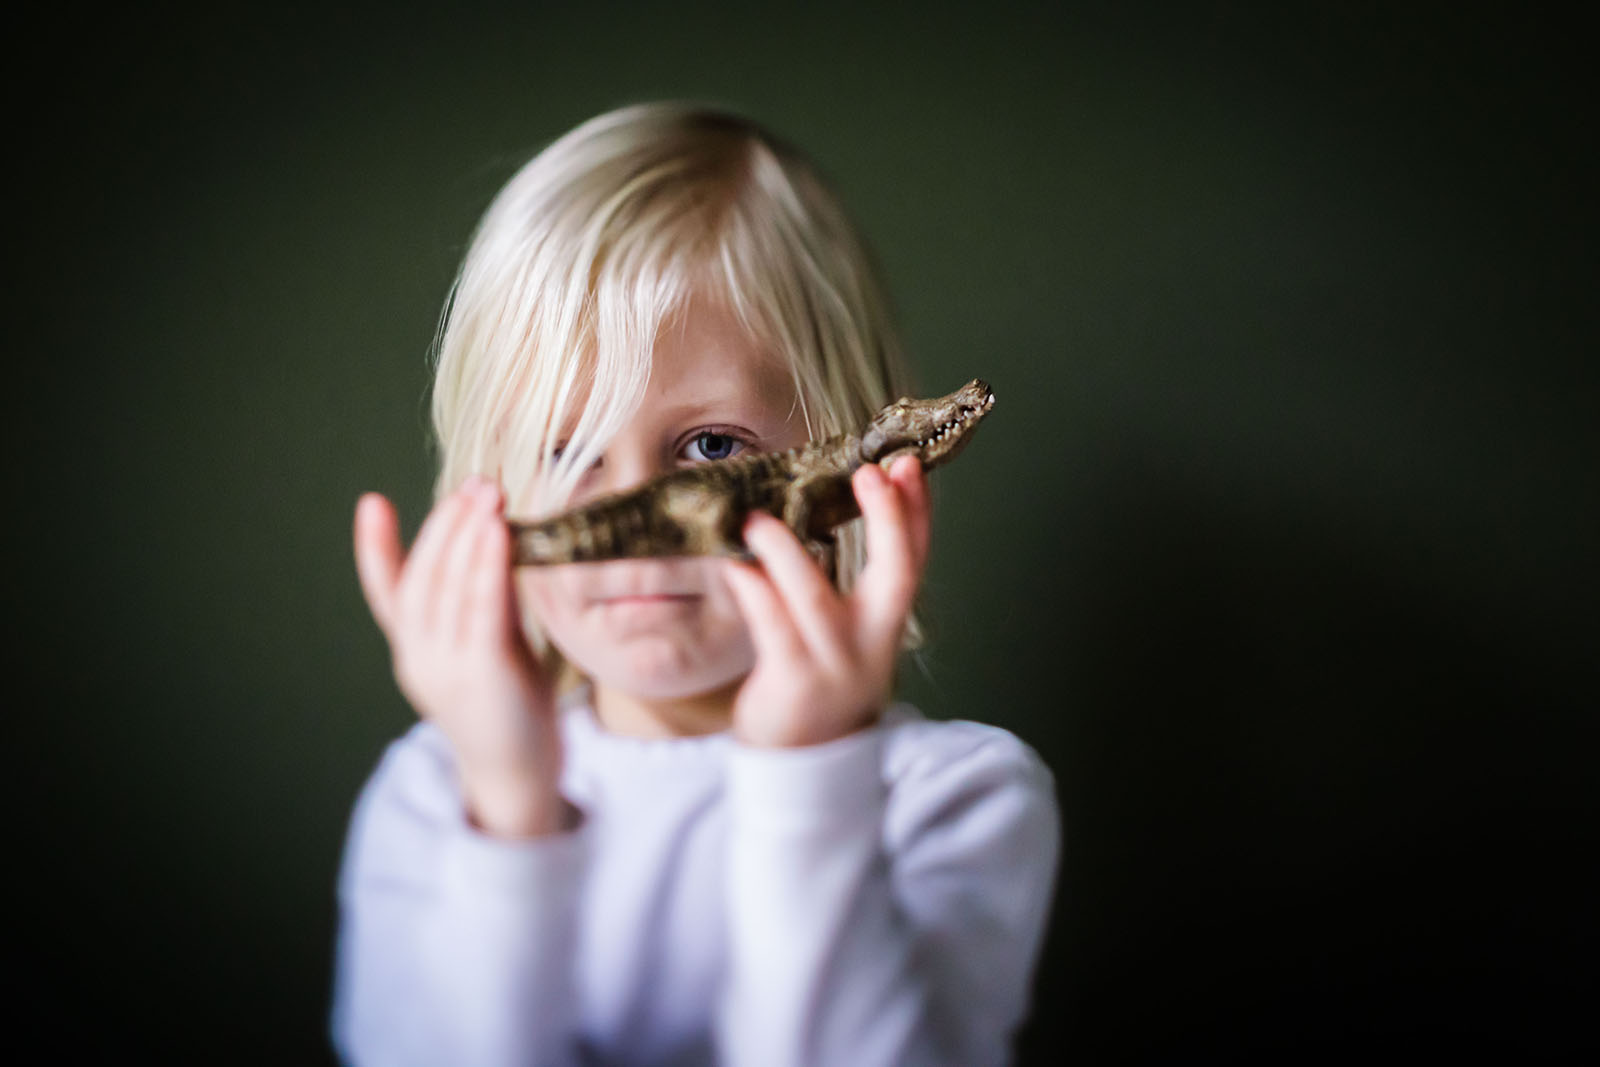 Tilt-shift image of child with lizard, photography on a budget